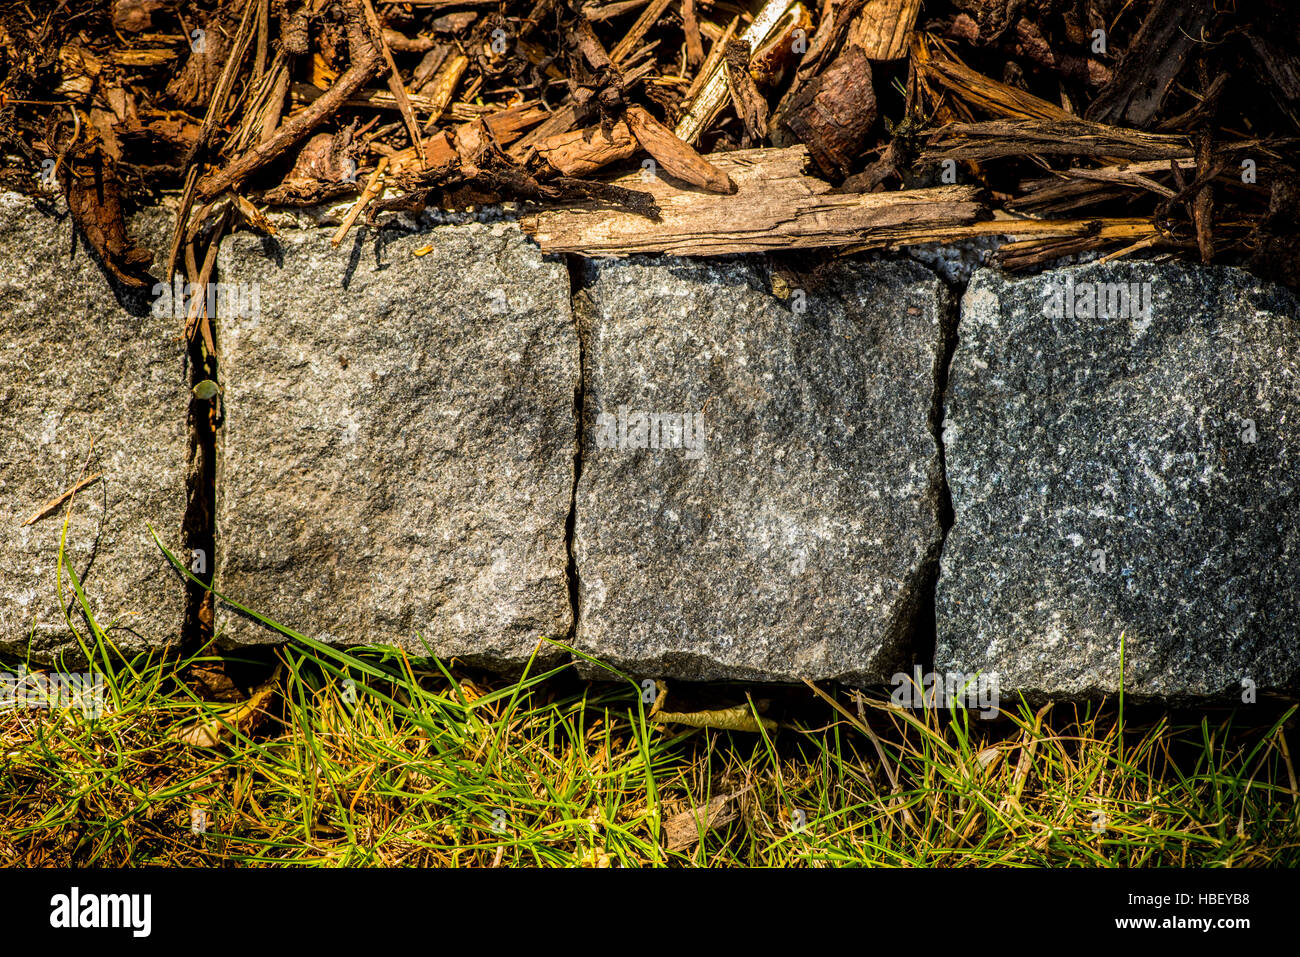 boundary between lawn and flower bed edged with block pavers - Stock Image